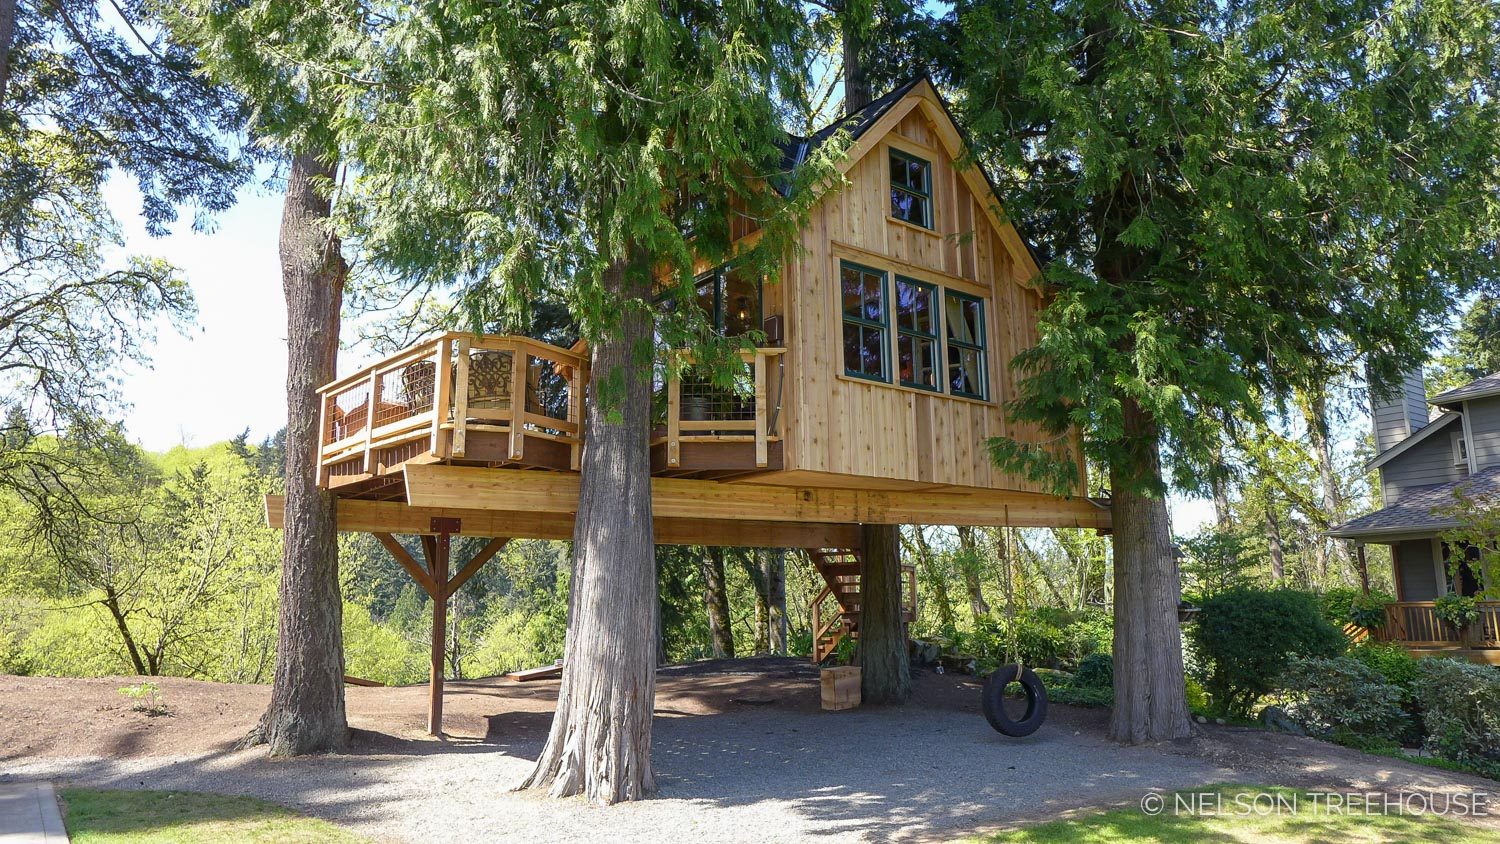 Hot Tub Treehouse - Nelson Treehouse